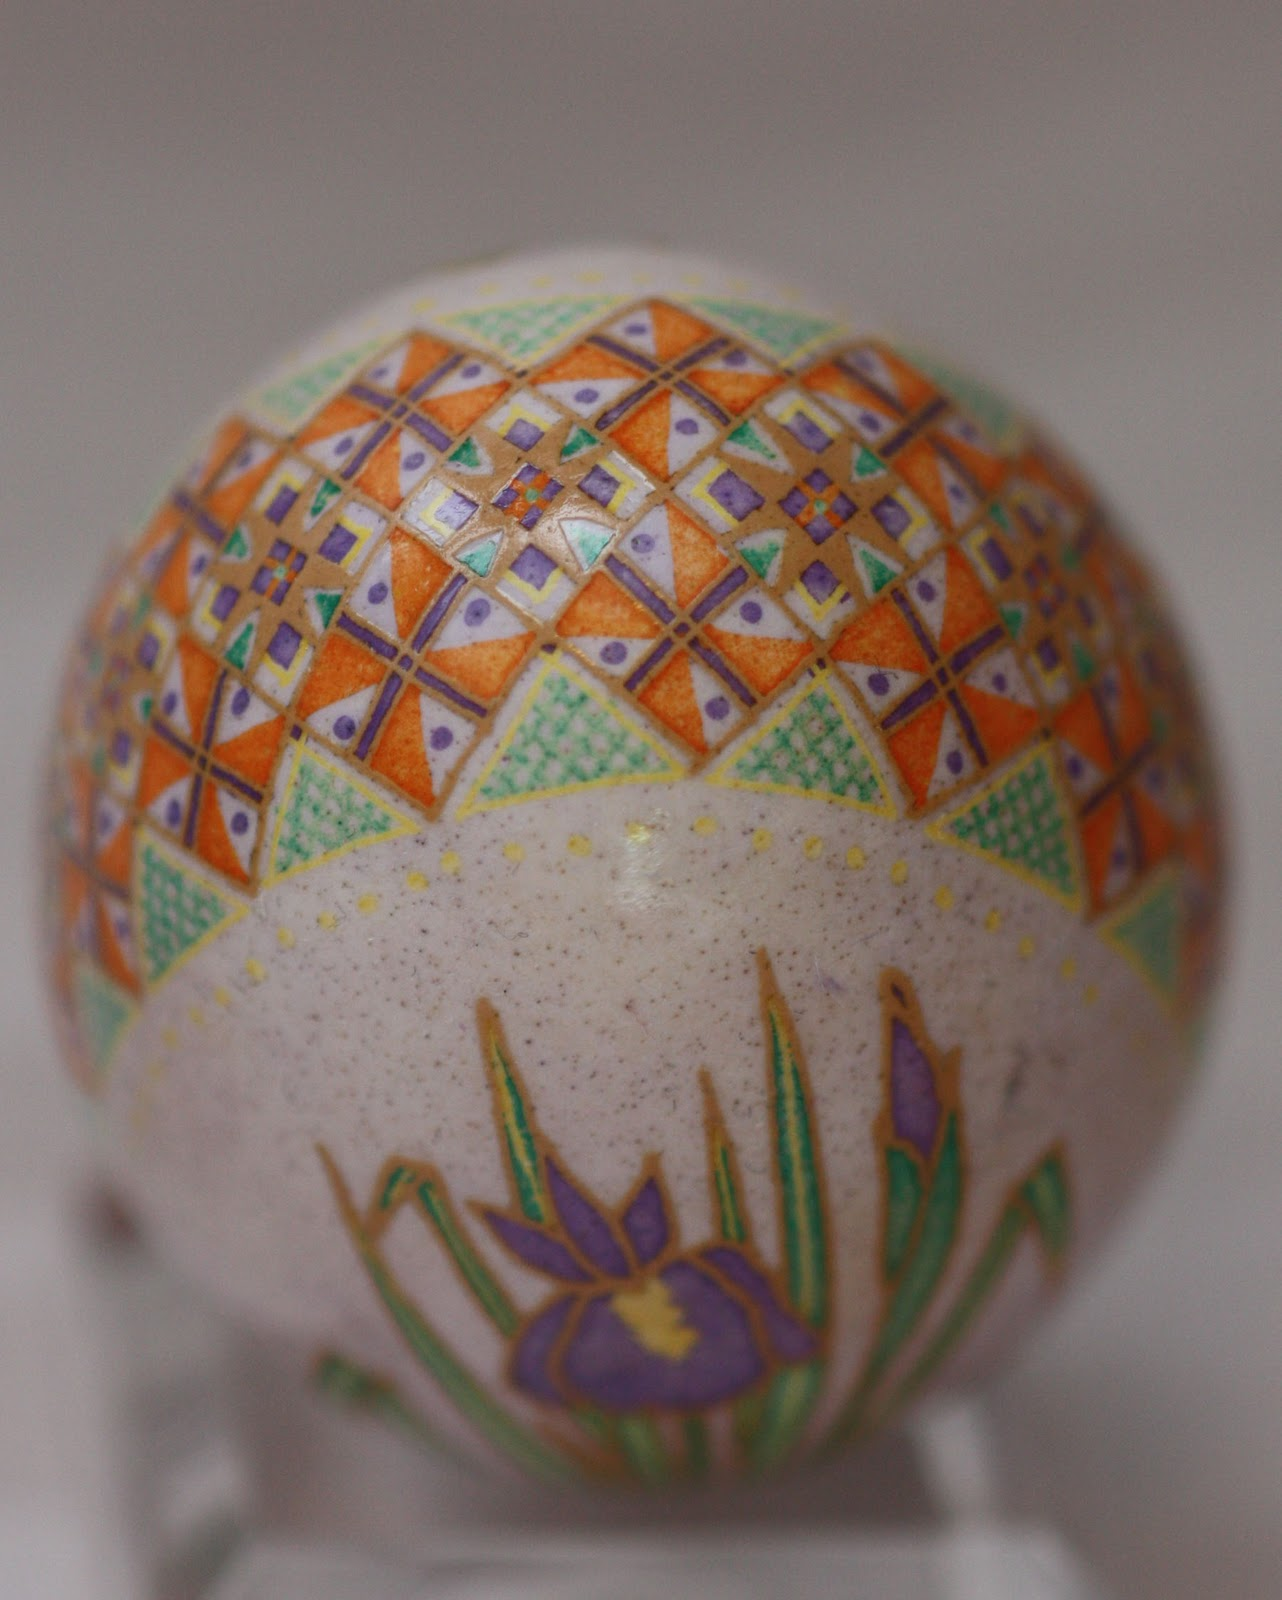 Purple Iris Pysanky on Lavender with Orange and Green Accents